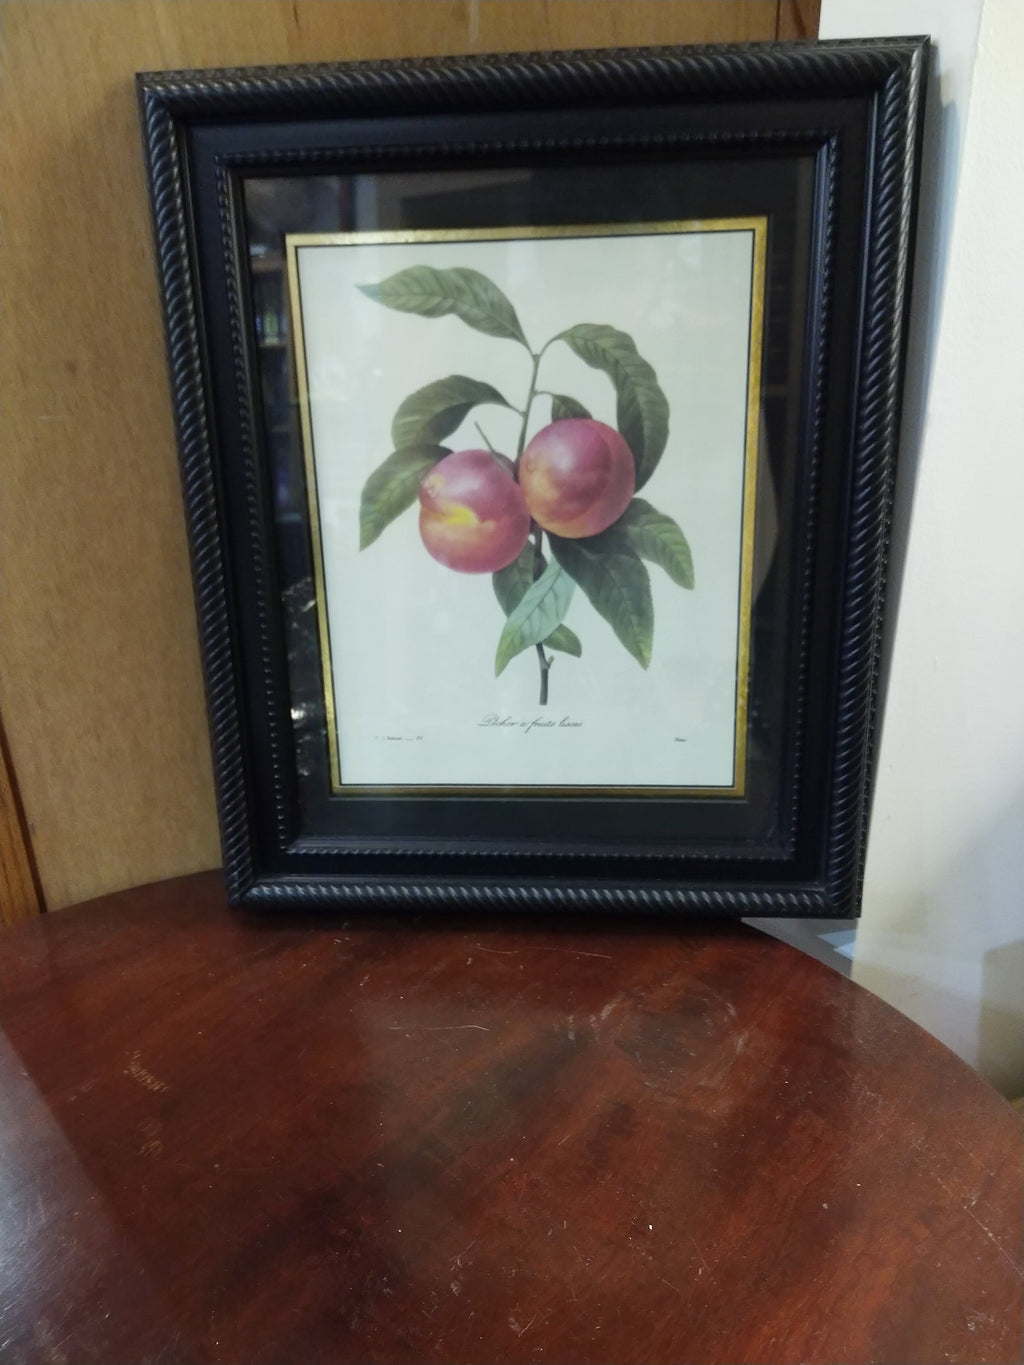 Framed Print by P.J. Redoute published in 1827 Pecher a fruits lisses